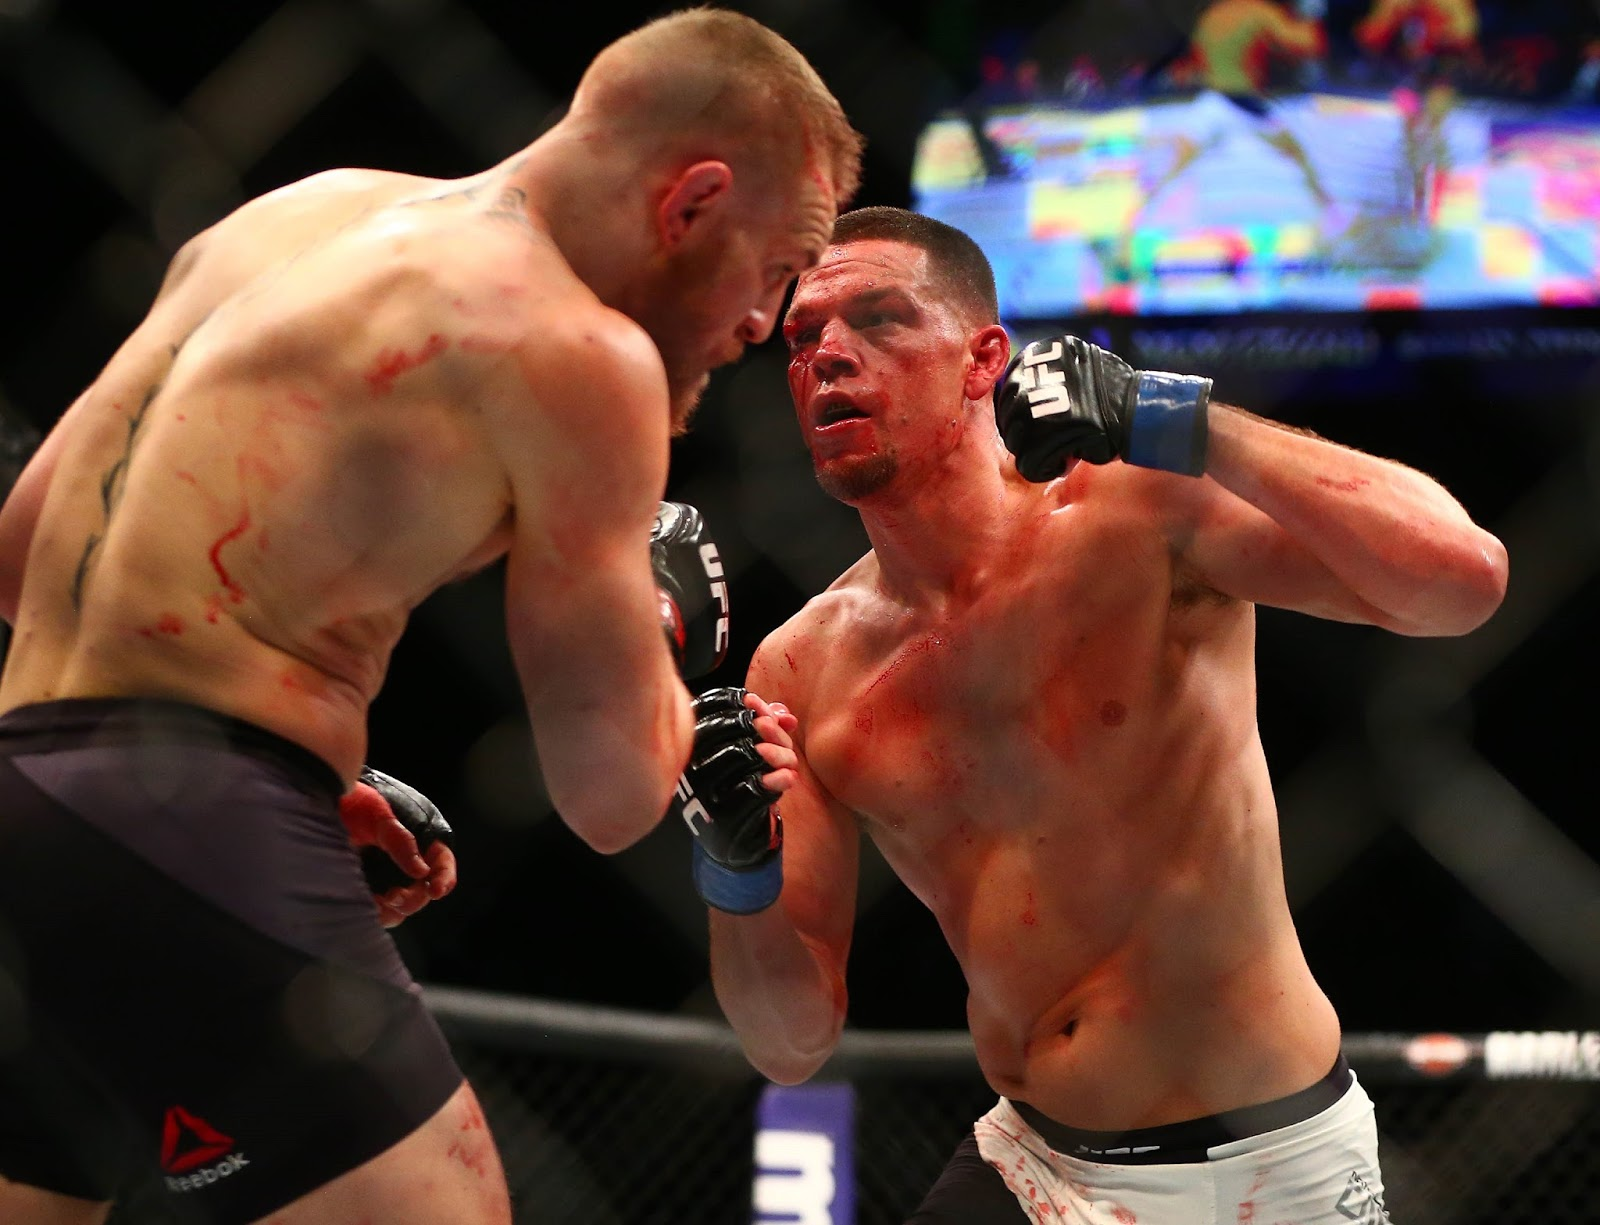 CONOR MCGREGOR VS. NATE DIAZ 7